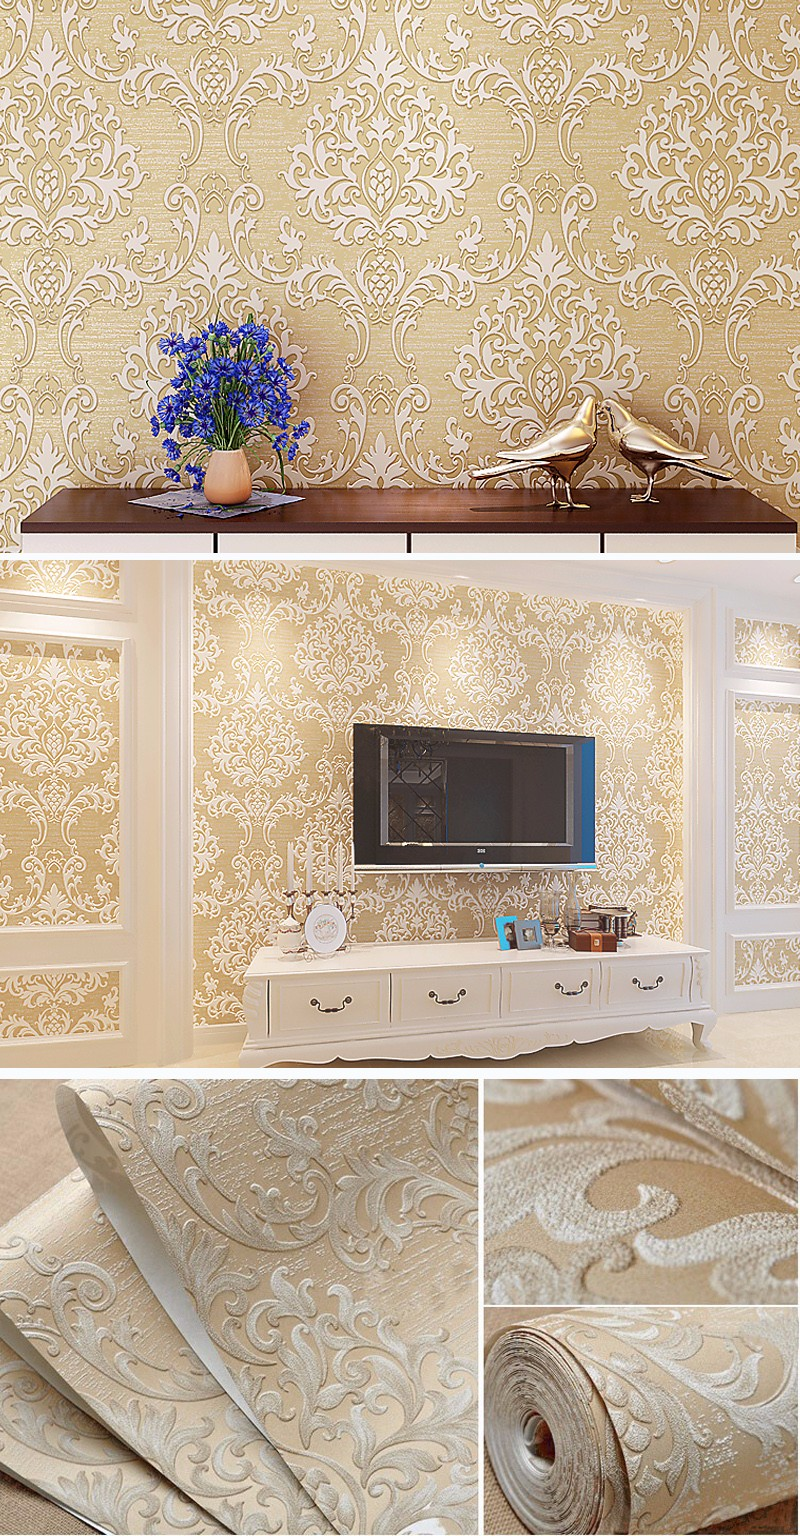 3d Embossed Floral Textured Damask Wallpaper Buy Non Woven